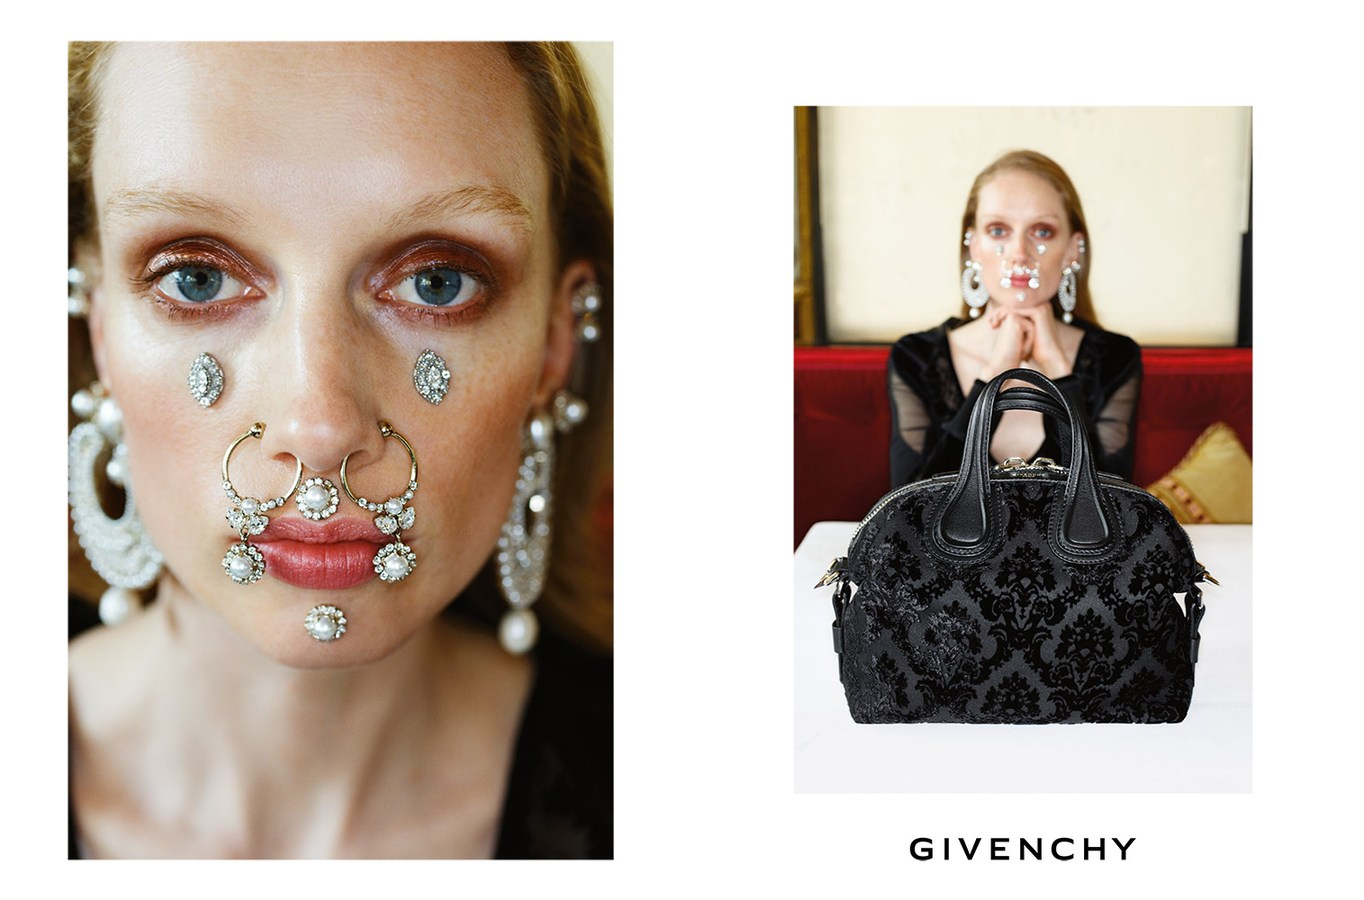 GIVENCHY | PHOTOGRAPHY MARTIN PARR | STYLING ELODIE DAVID-TOUBOUL |  LE BON MARCHE' | FALL/WINTER 2015